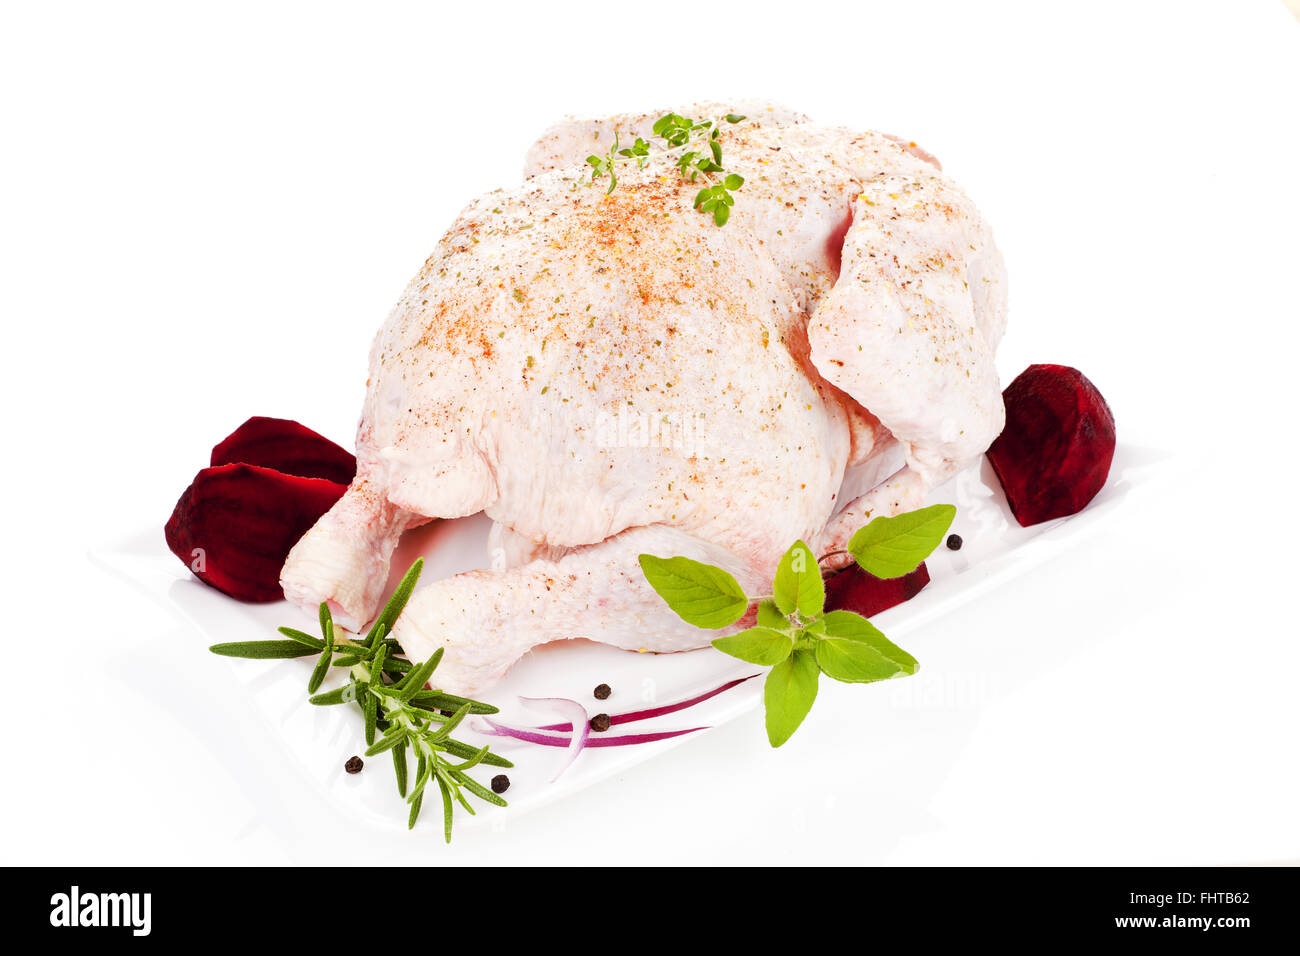 Raw whole chicken. Poultry. - Stock Image